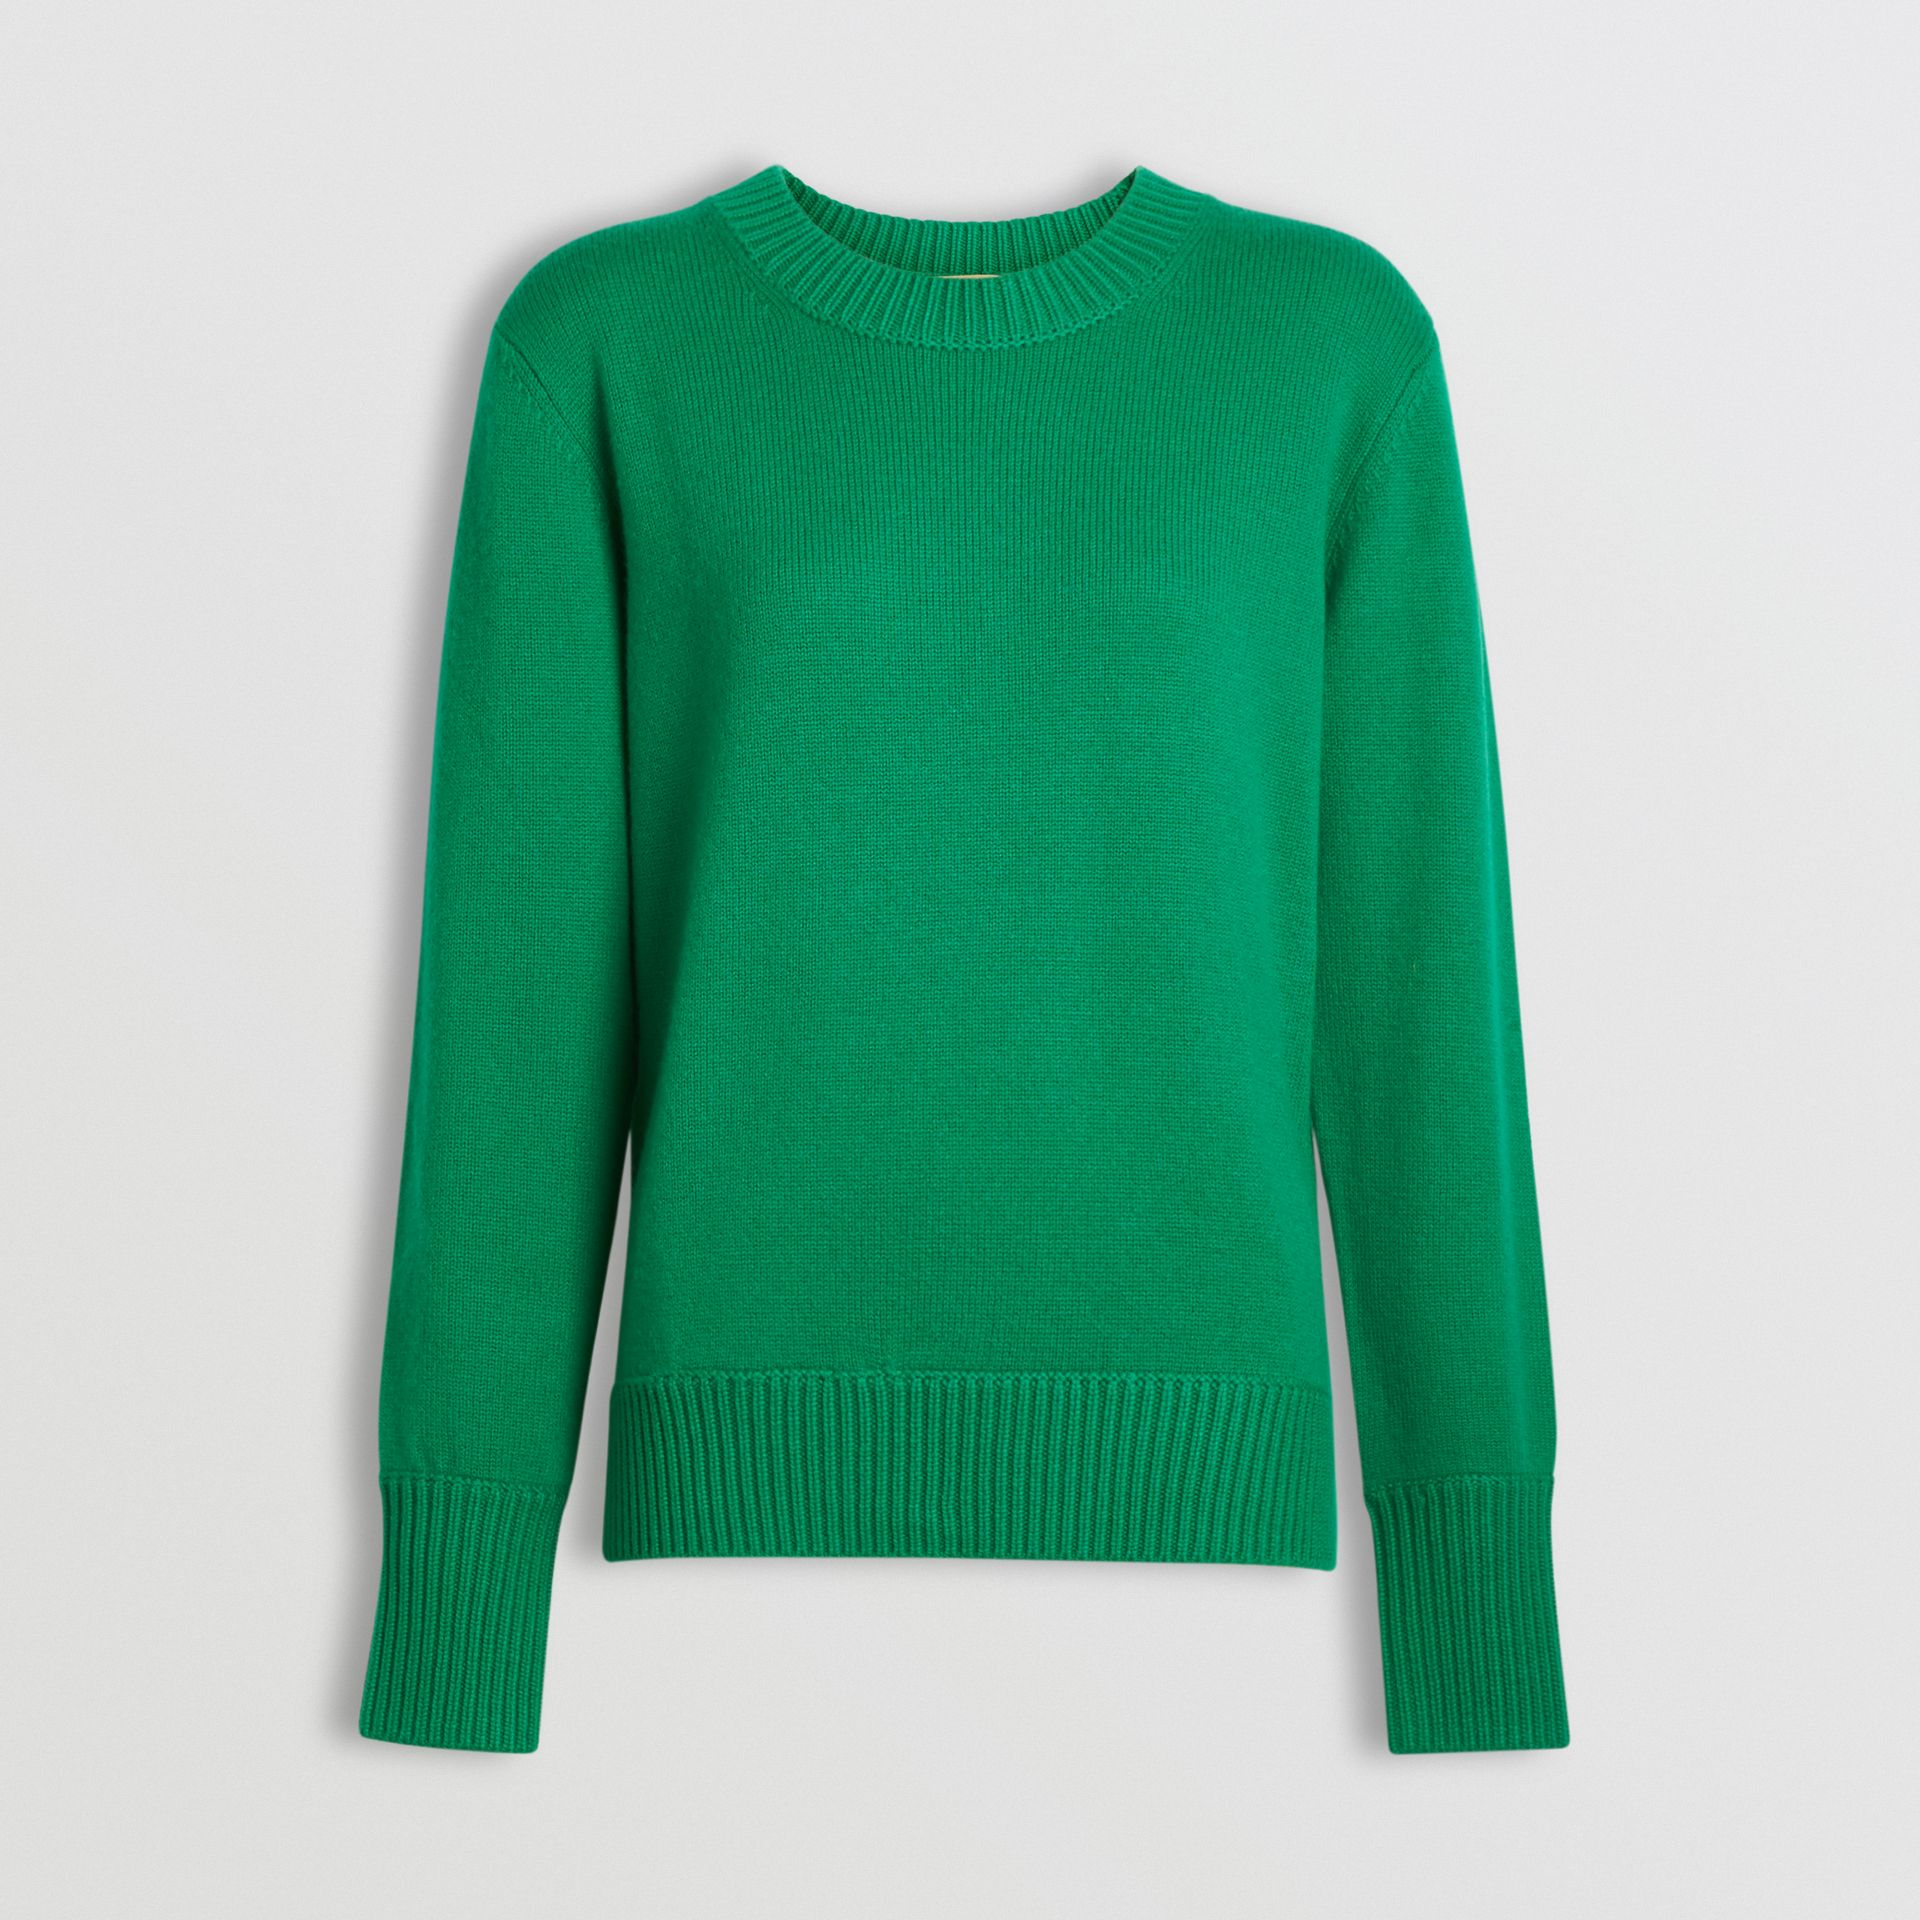 Archive Logo Appliqué Cashmere Sweater in Vibrant Green - Women | Burberry - gallery image 3